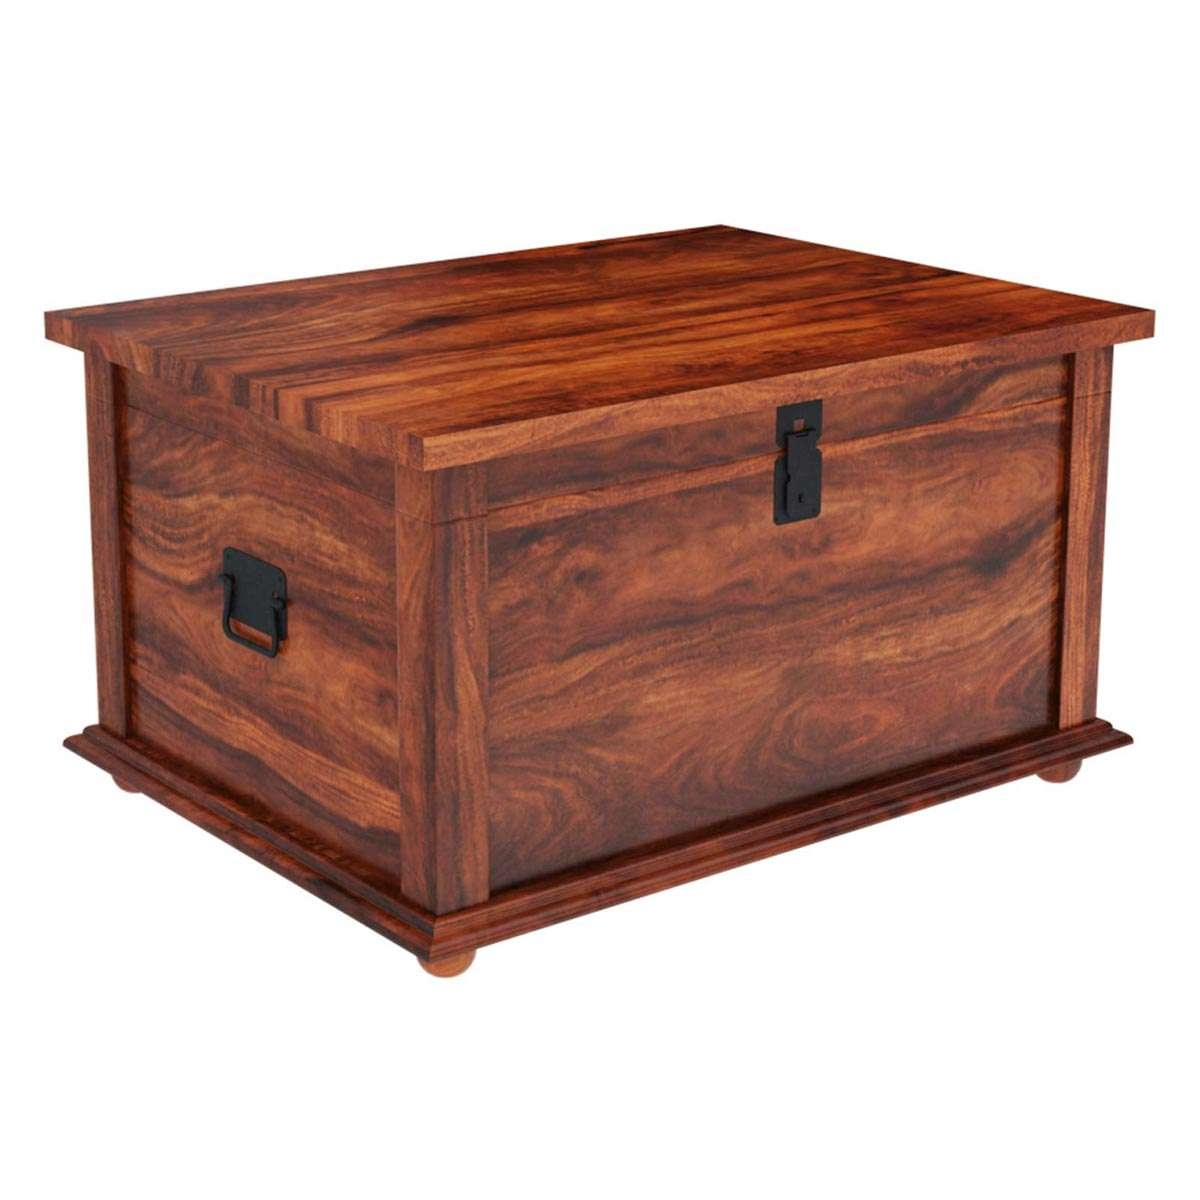 Fashionable Storage Trunk Coffee Tables Pertaining To Wood Storage Grinnell Storage Chest Trunk Coffee Table (View 8 of 20)